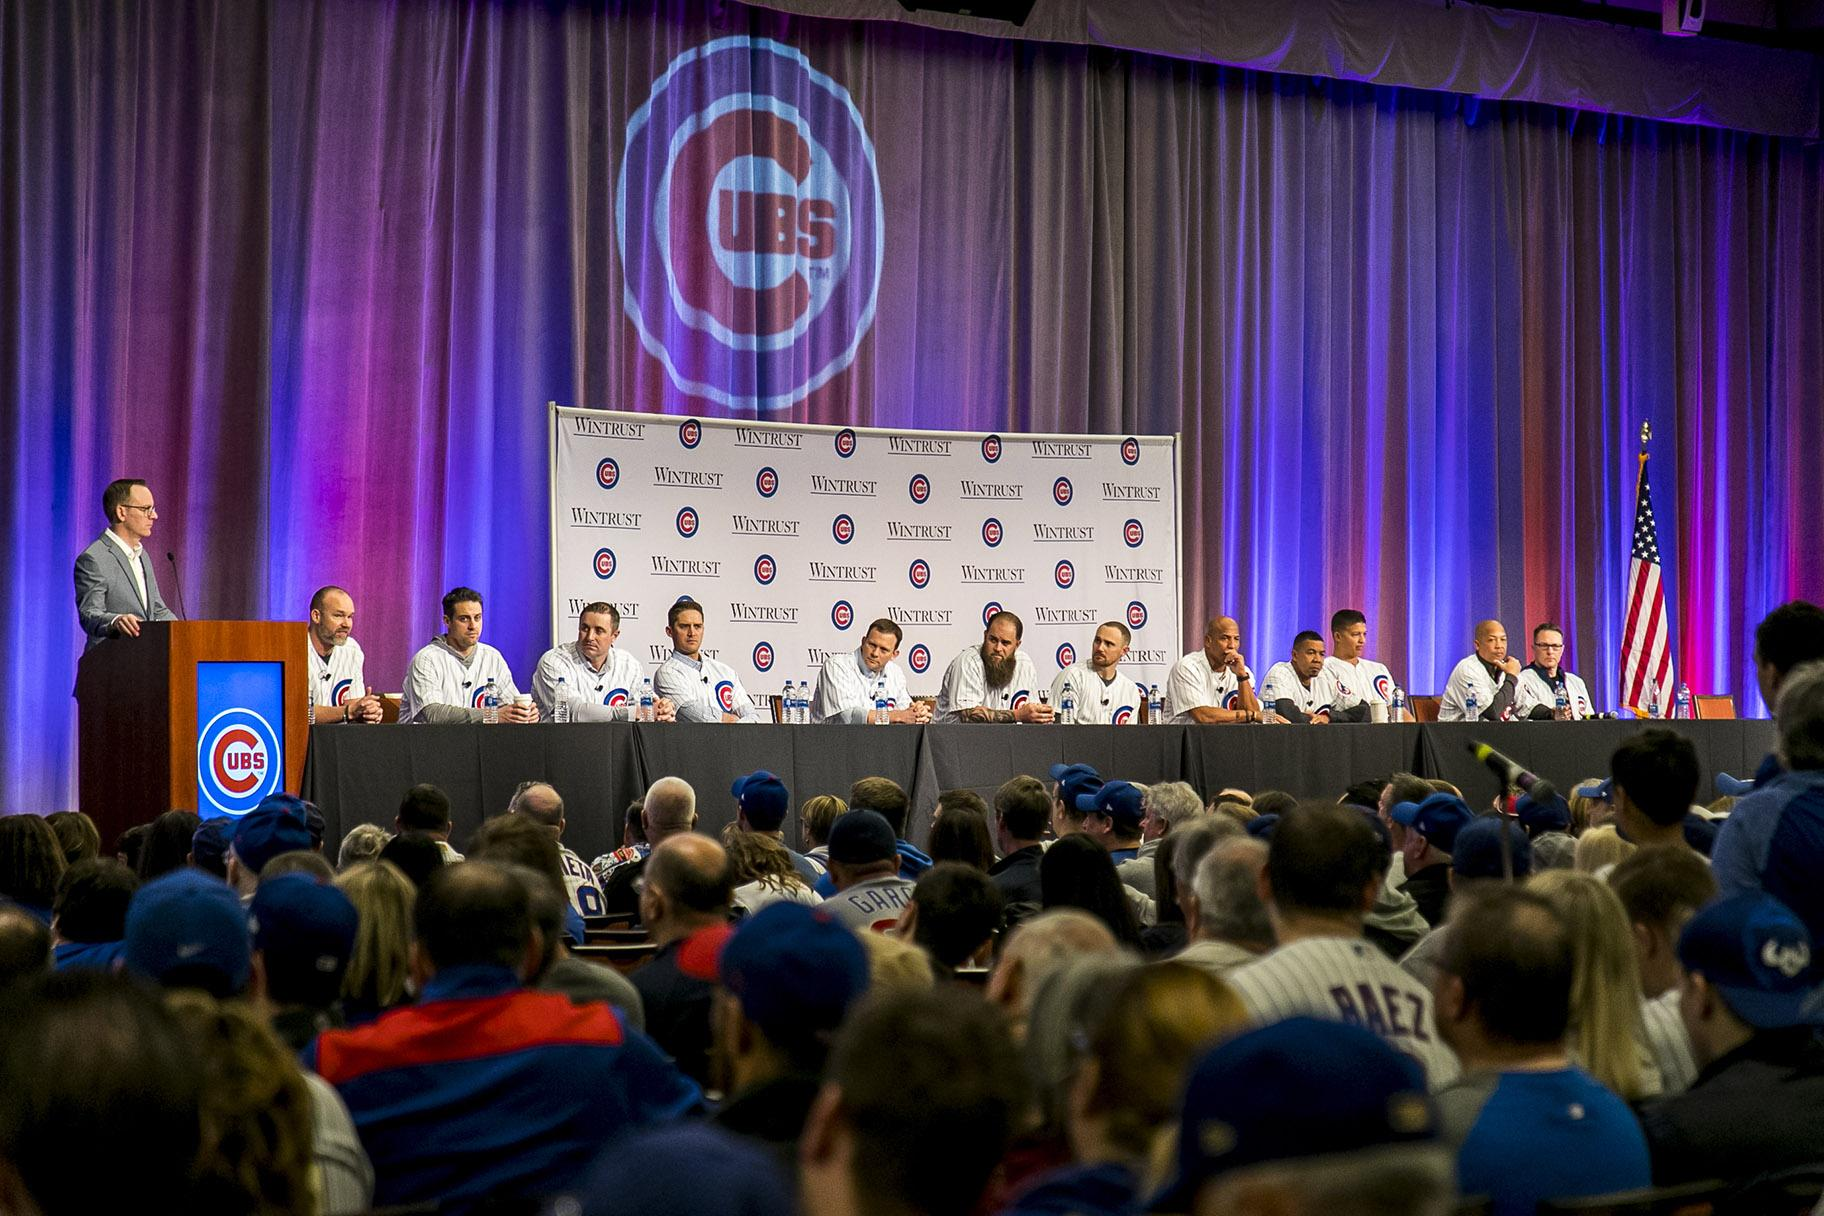 Cubs broadcaster Len Kasper leads a panel of Cubs players at the recent Cubs Convention. (Courtesy Steve Green / Chicago Cubs)